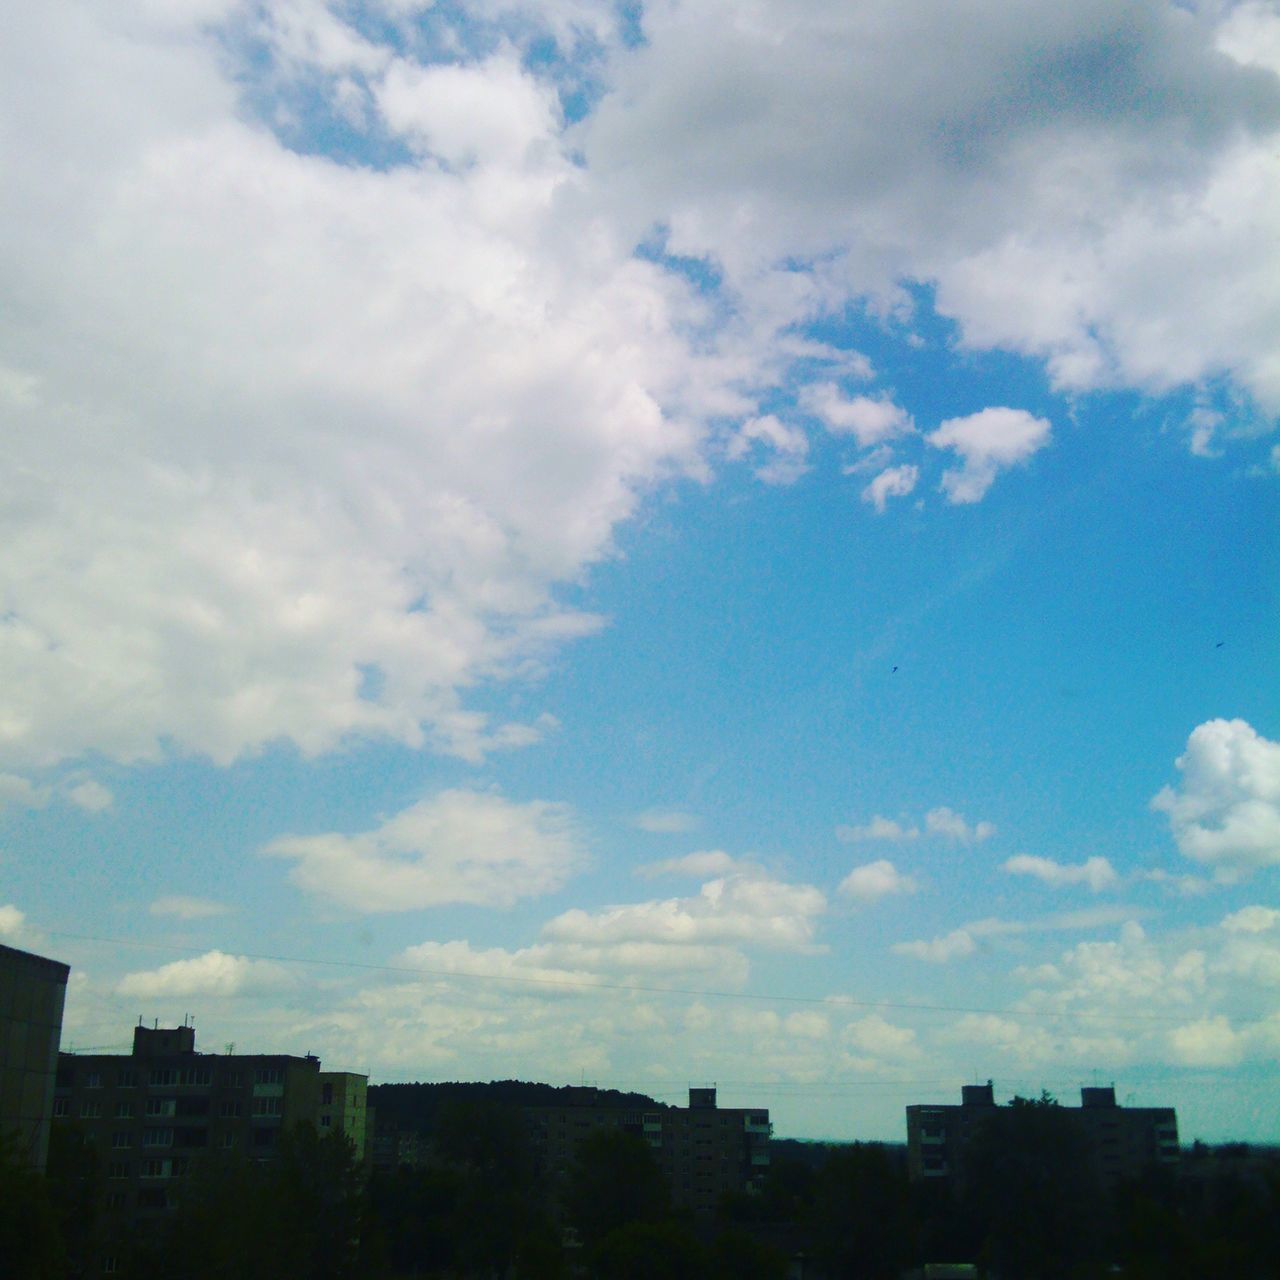 sky, architecture, city, cloud - sky, no people, building exterior, cityscape, outdoors, nature, day